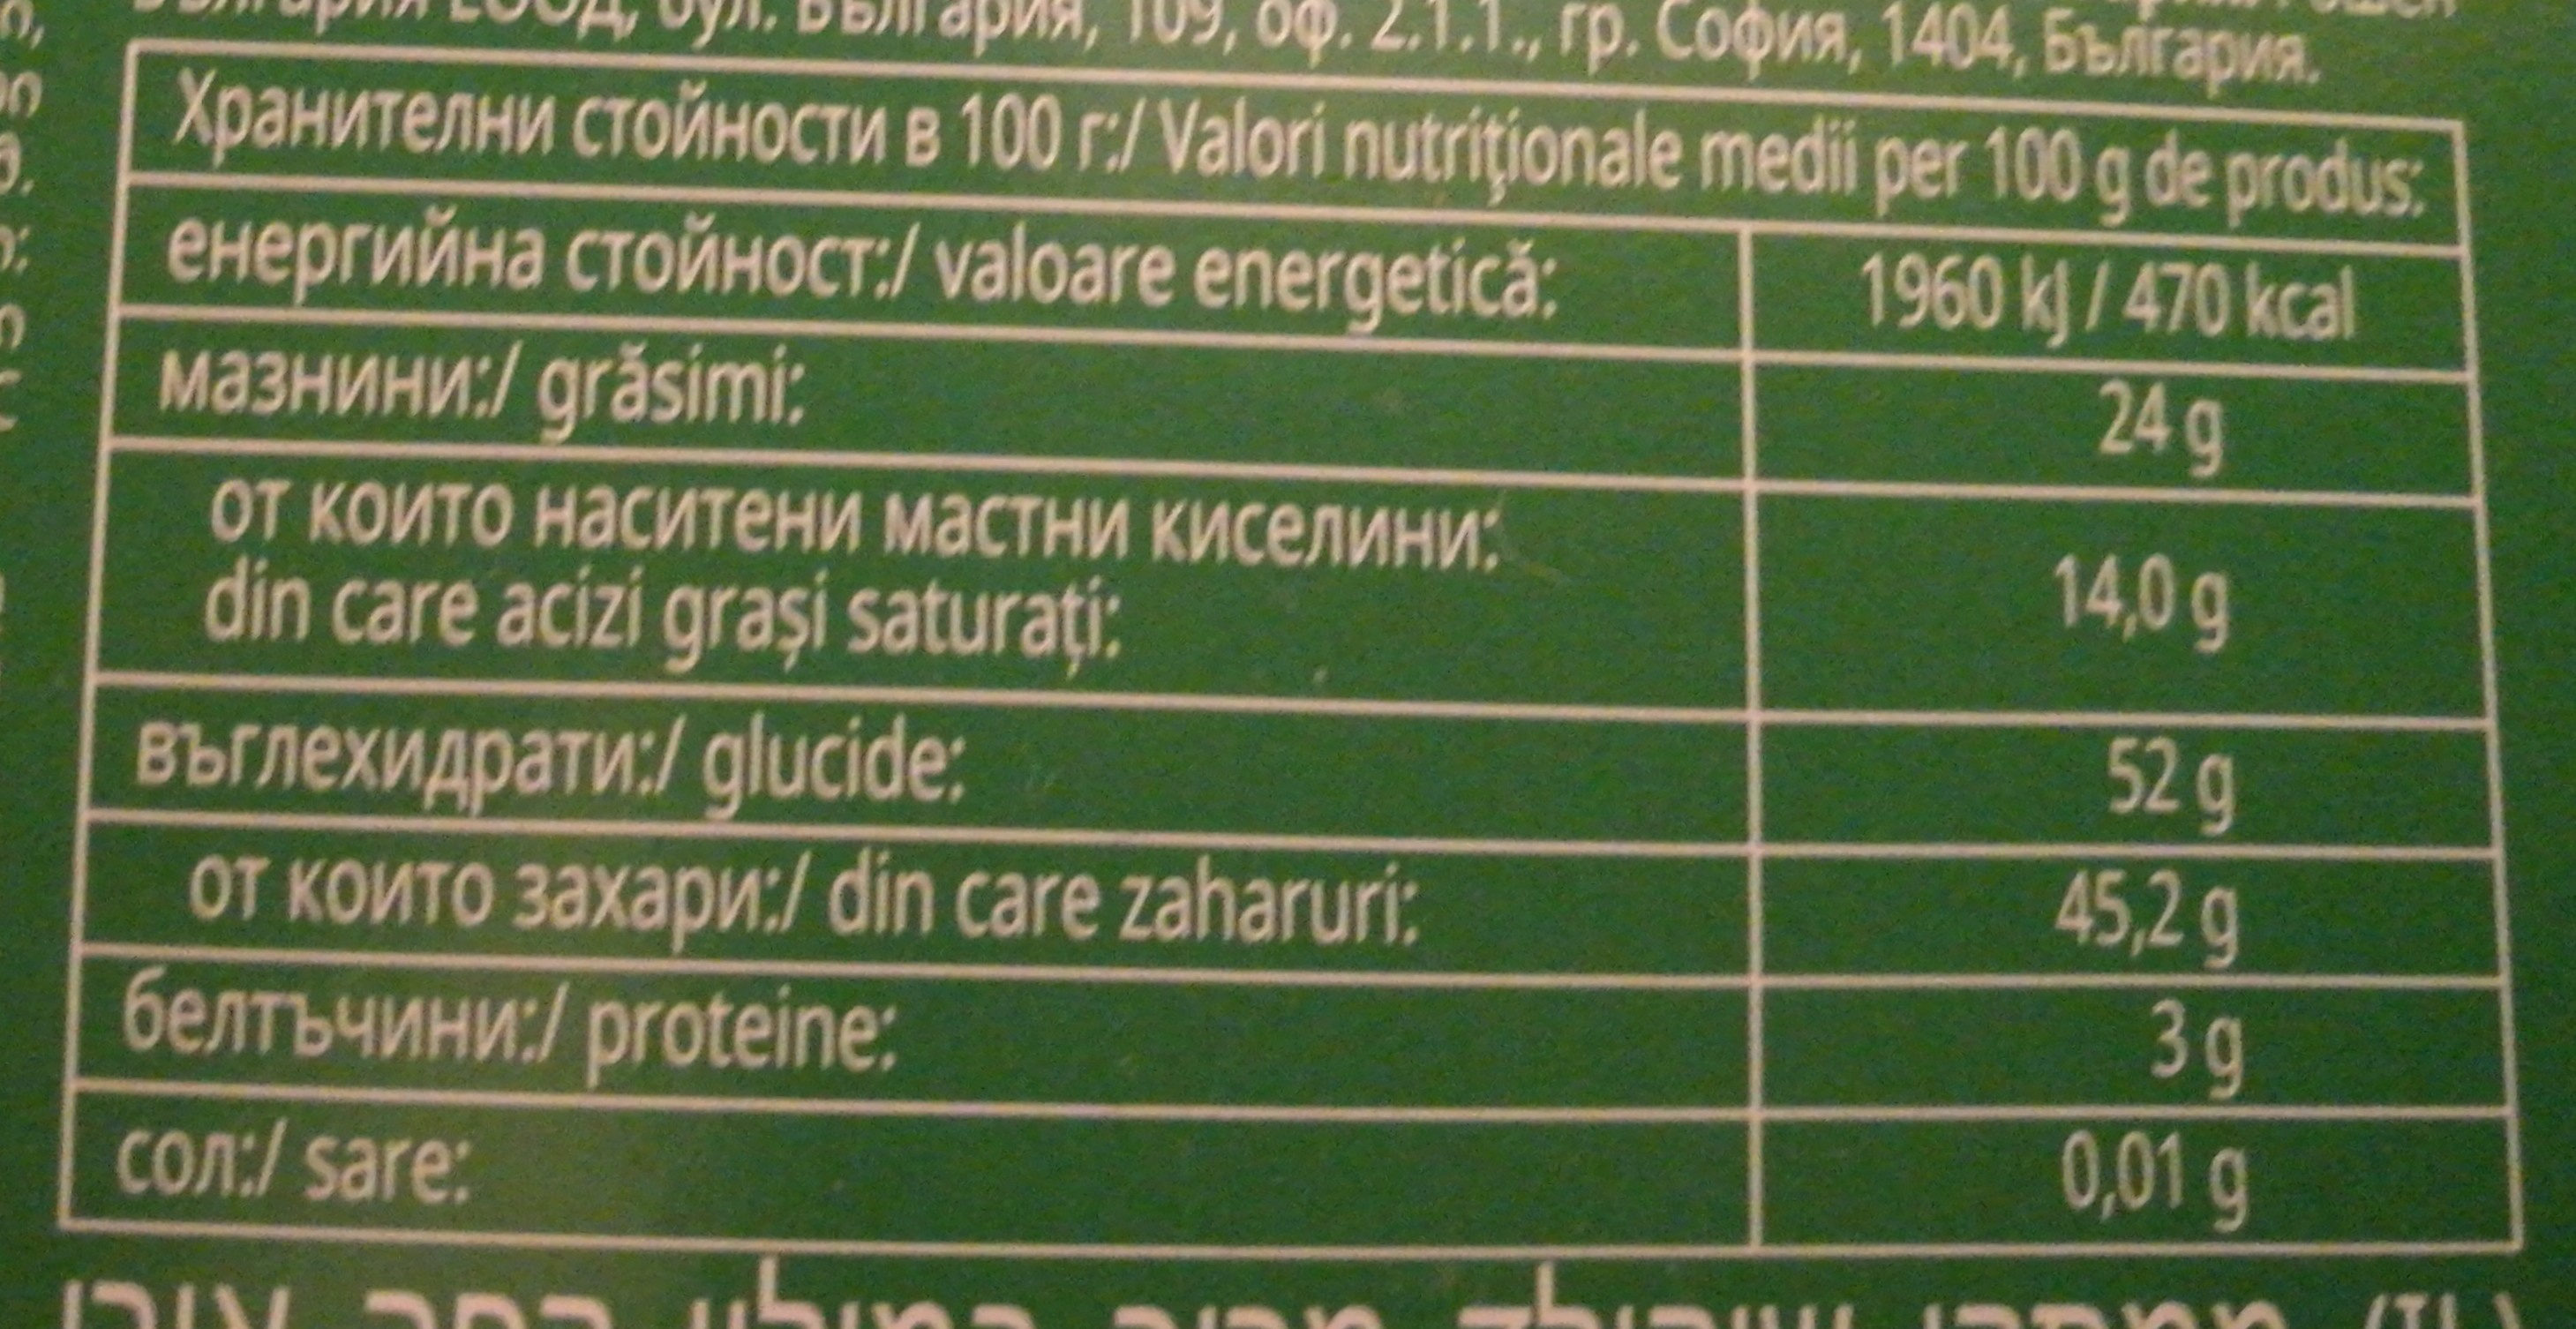 Shooters - Nutrition facts - en